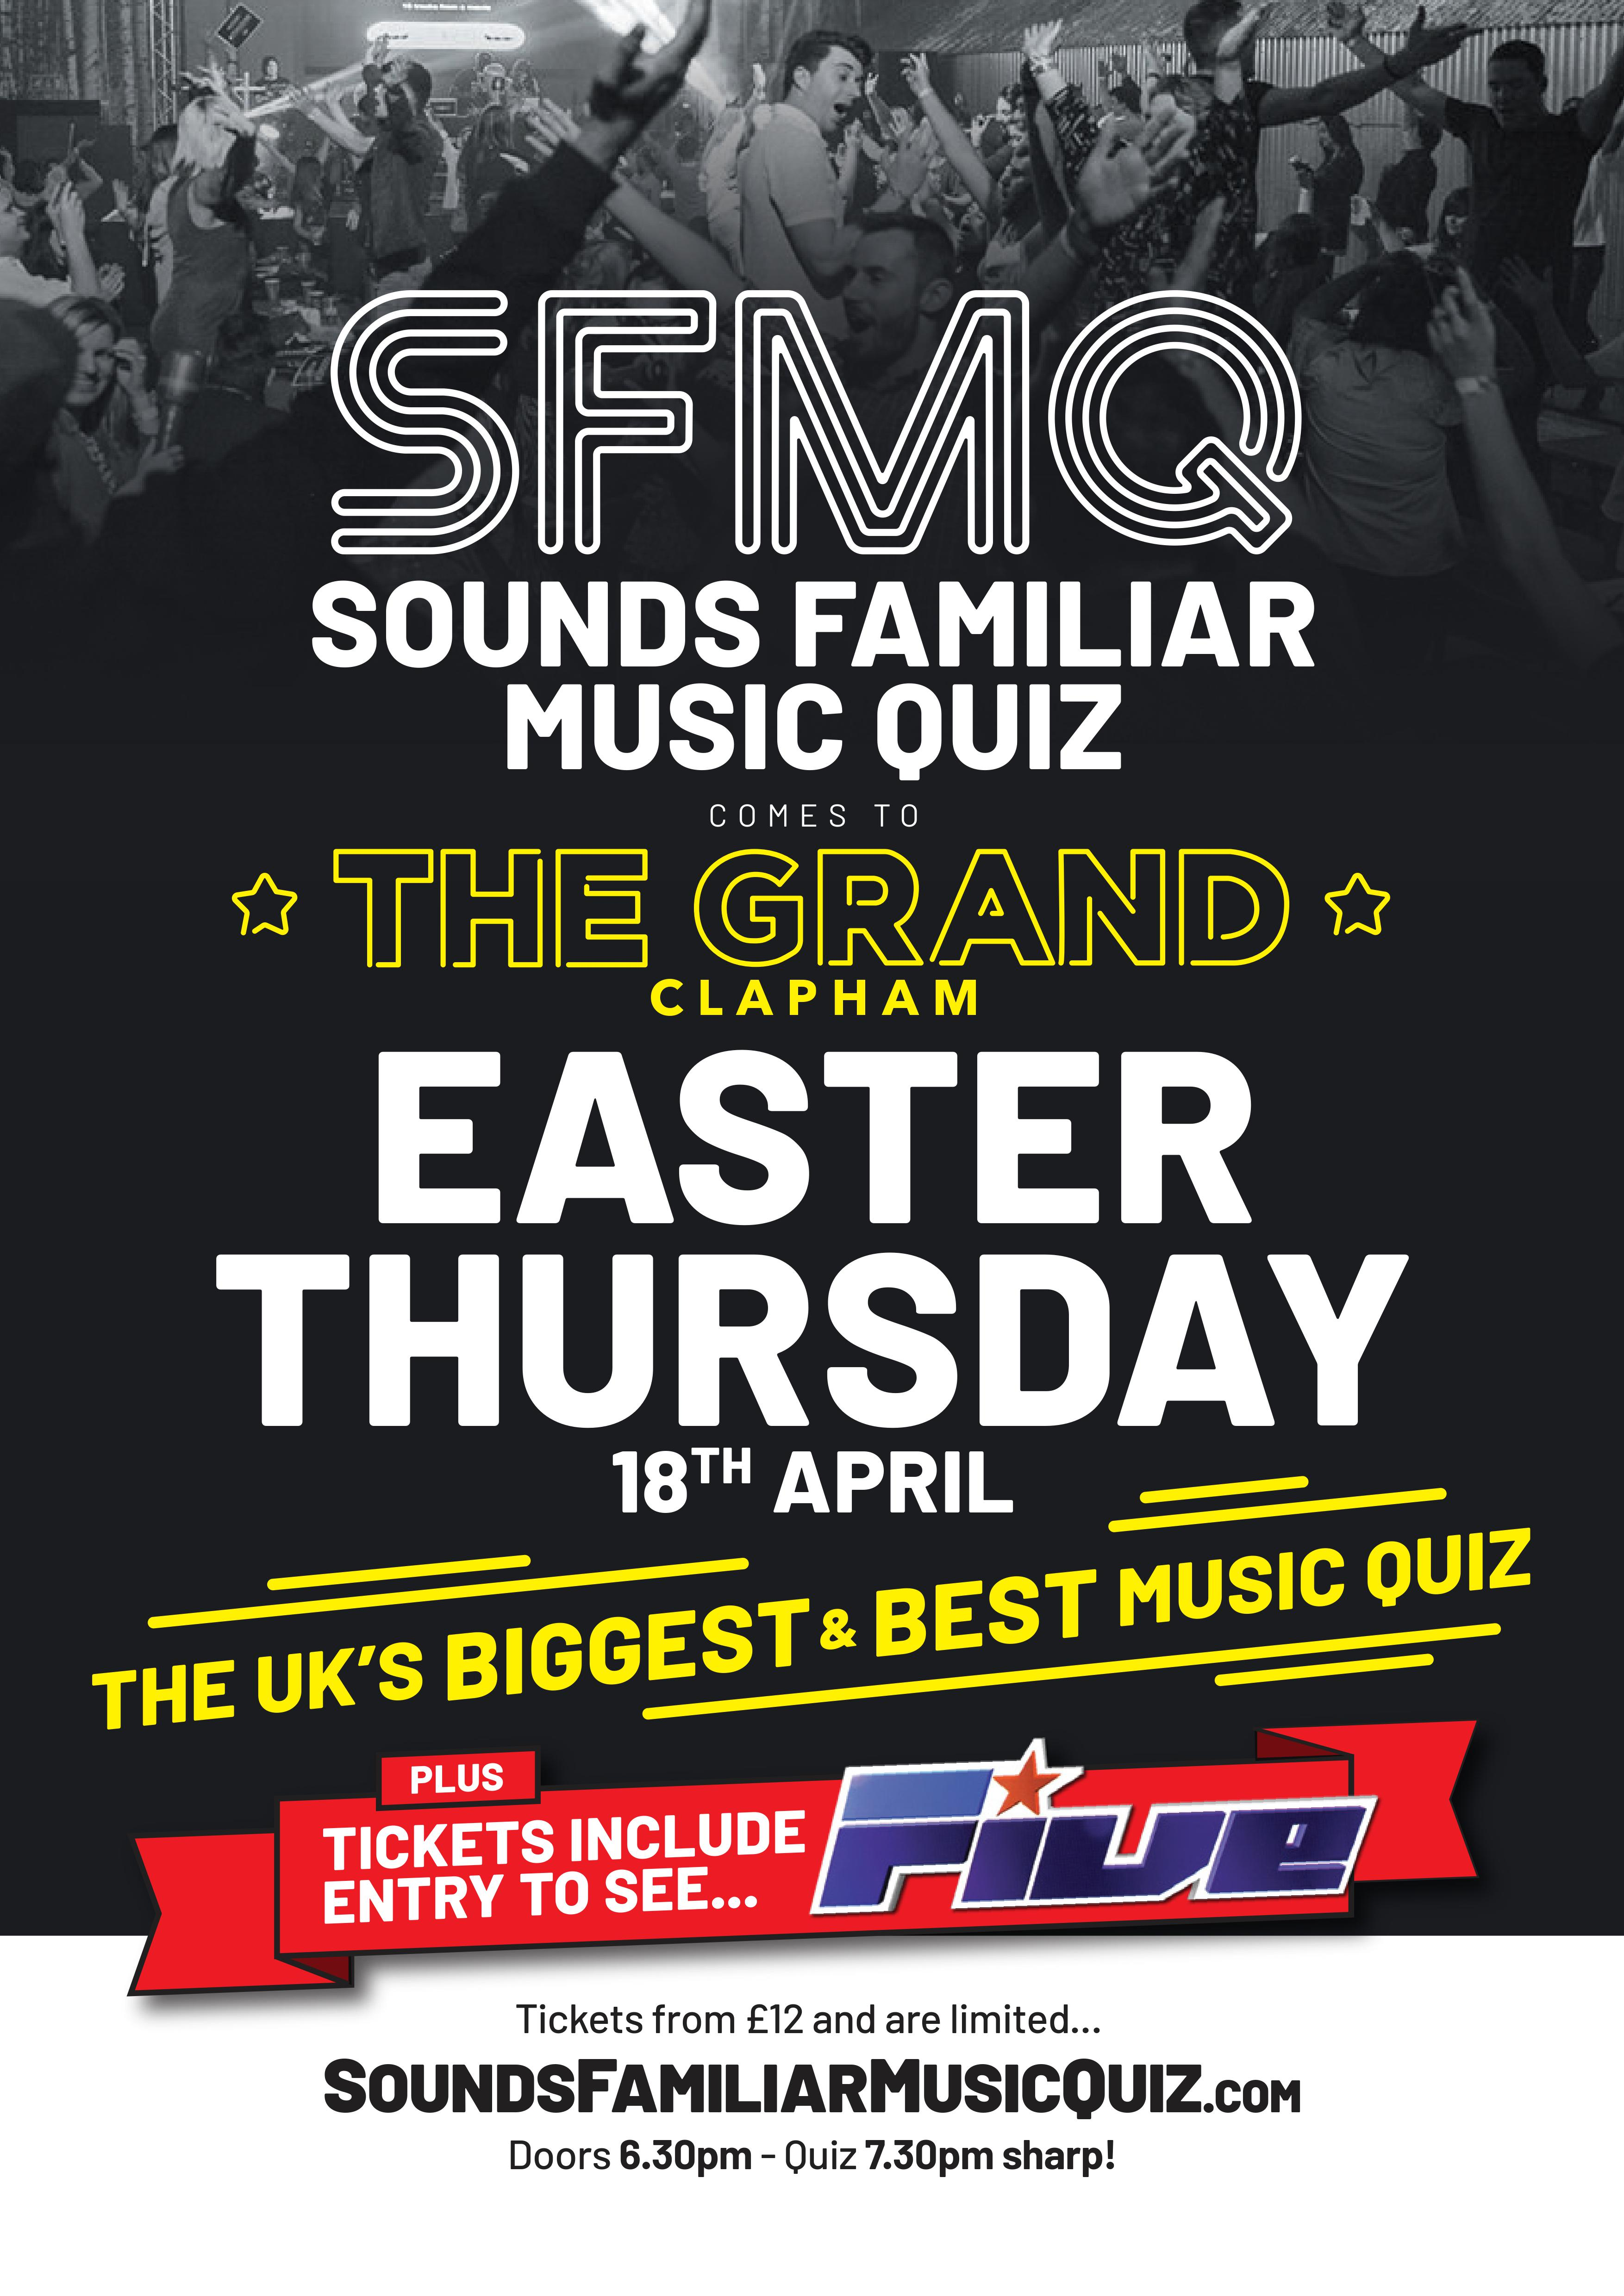 Sounds Familiar Music Quiz Easter Special at The Grand, Clapham